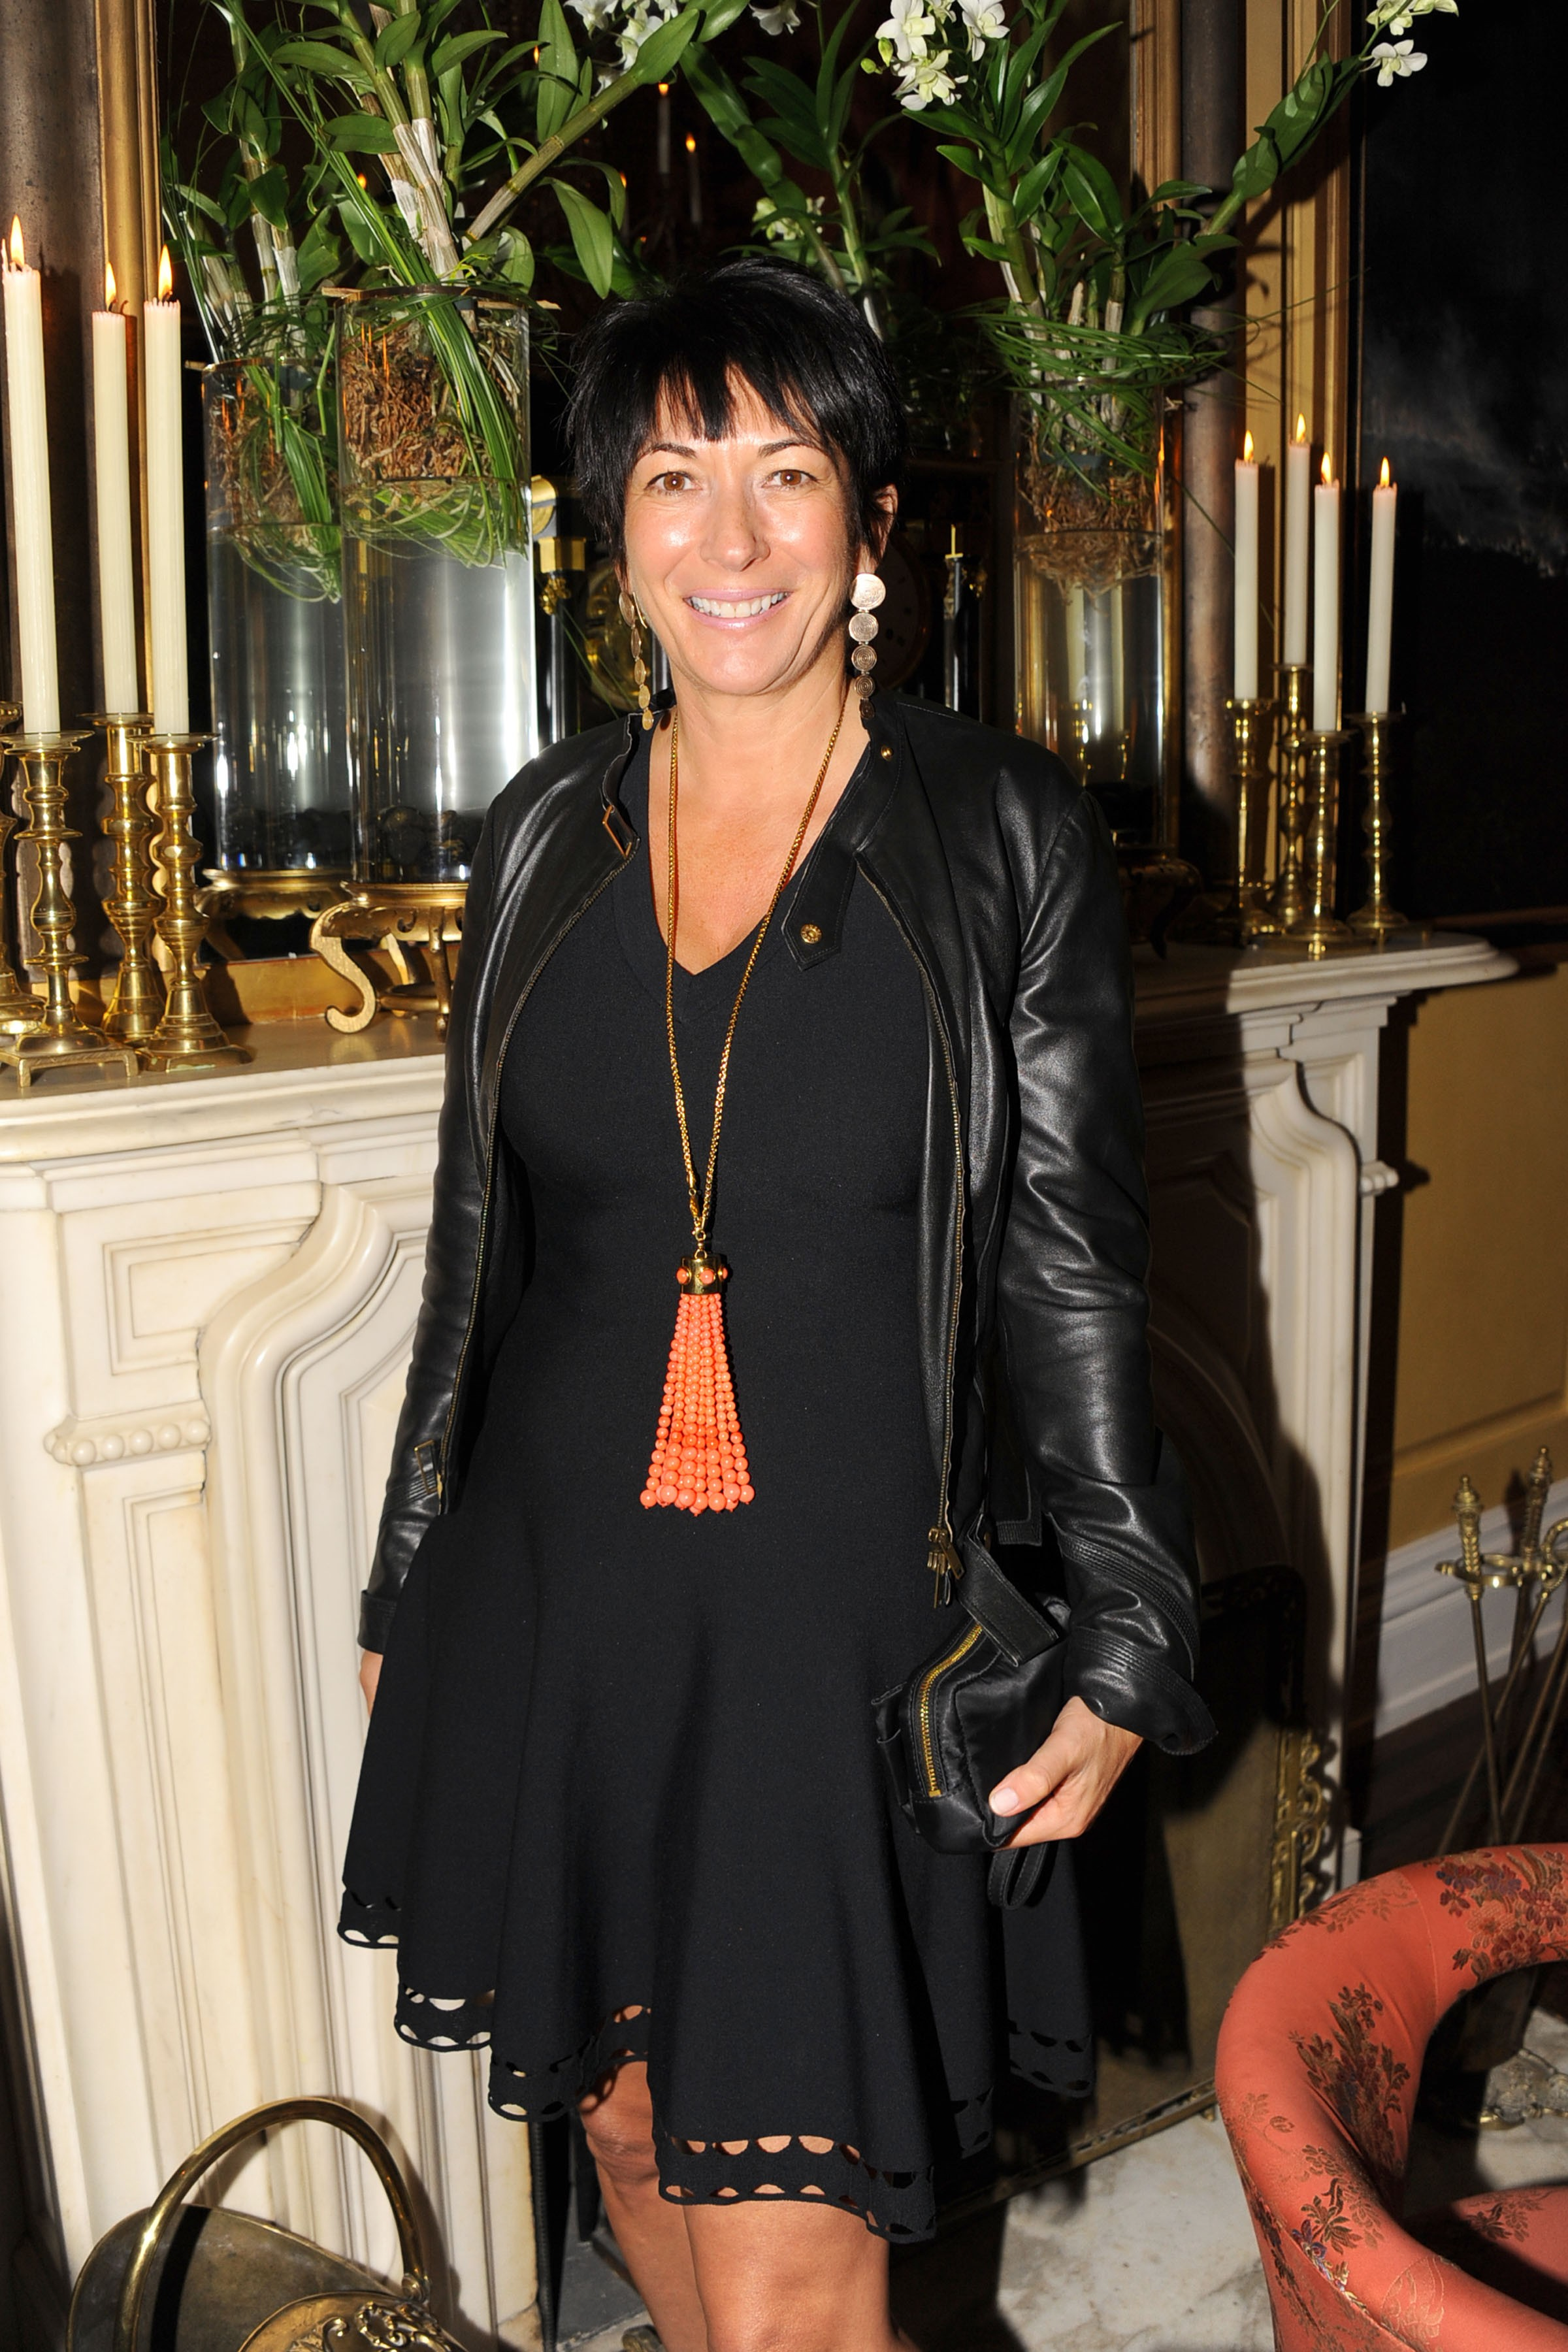 NEW YORK, NY - OCTOBER 21: Ghislaine Maxwell attends BREAKFAST WITH LUCIAN by Geordie Greig at Private Residence on October 21, 2013 in New York City. (Photo by Paul Bruinooge/Patrick McMullan via Getty Images)